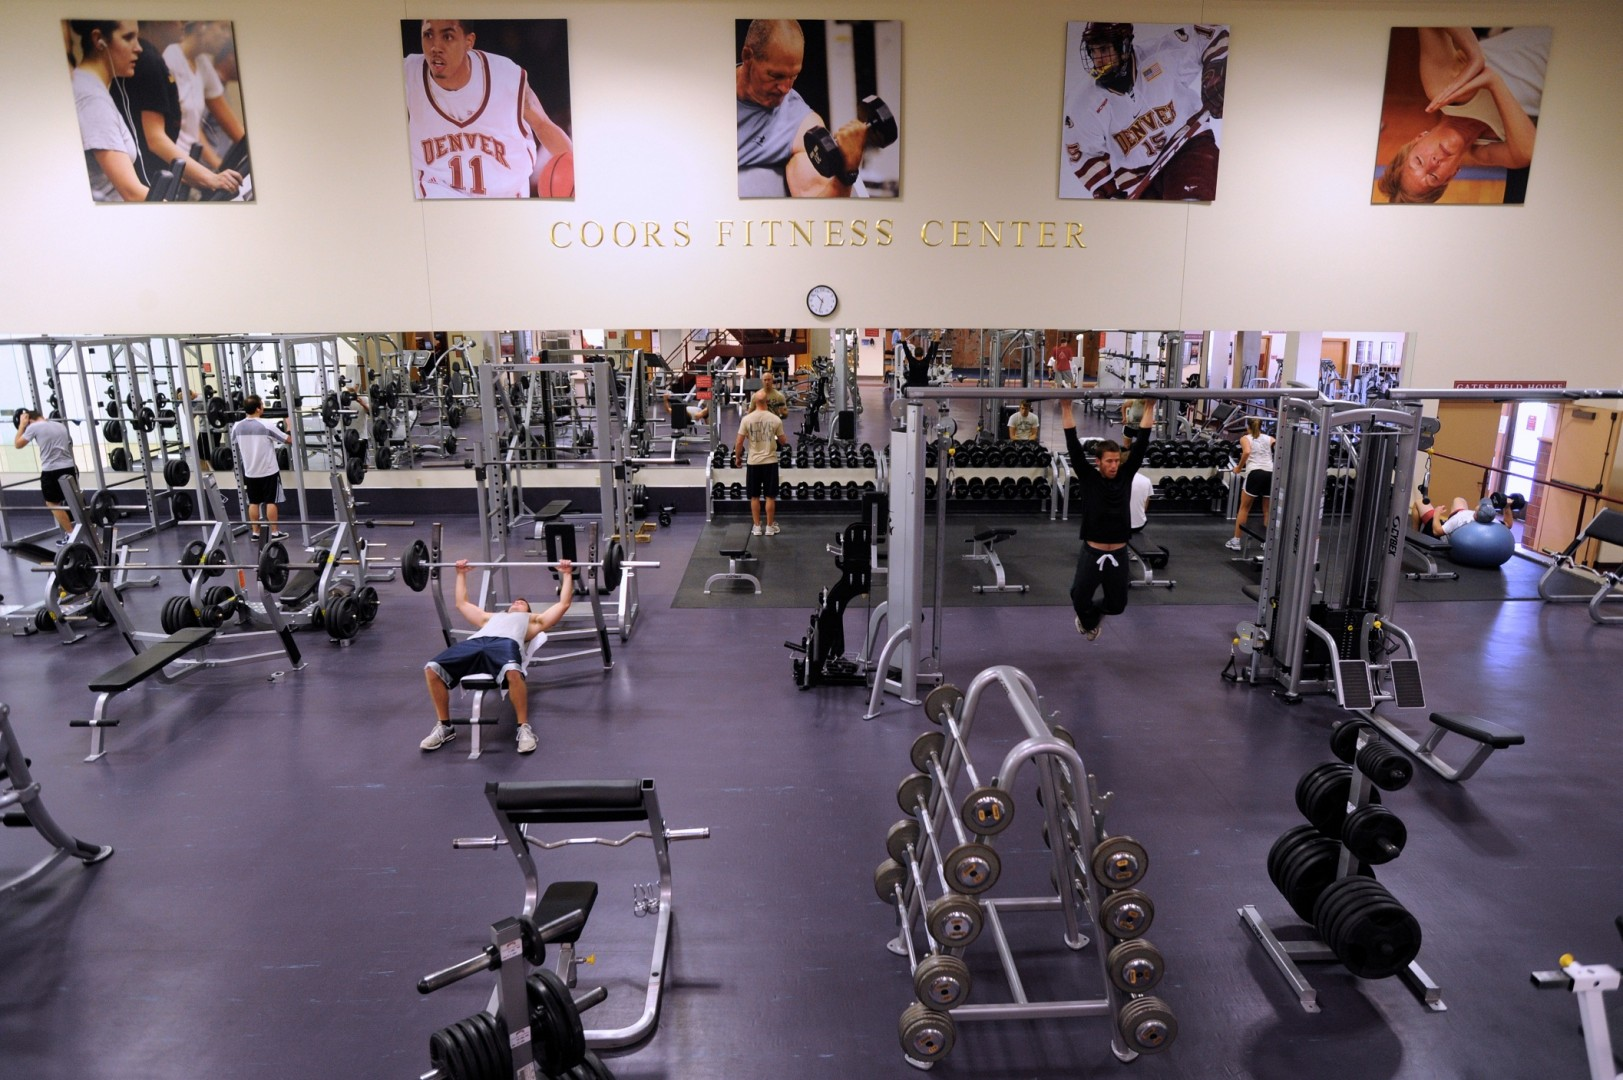 coors-fitness-center